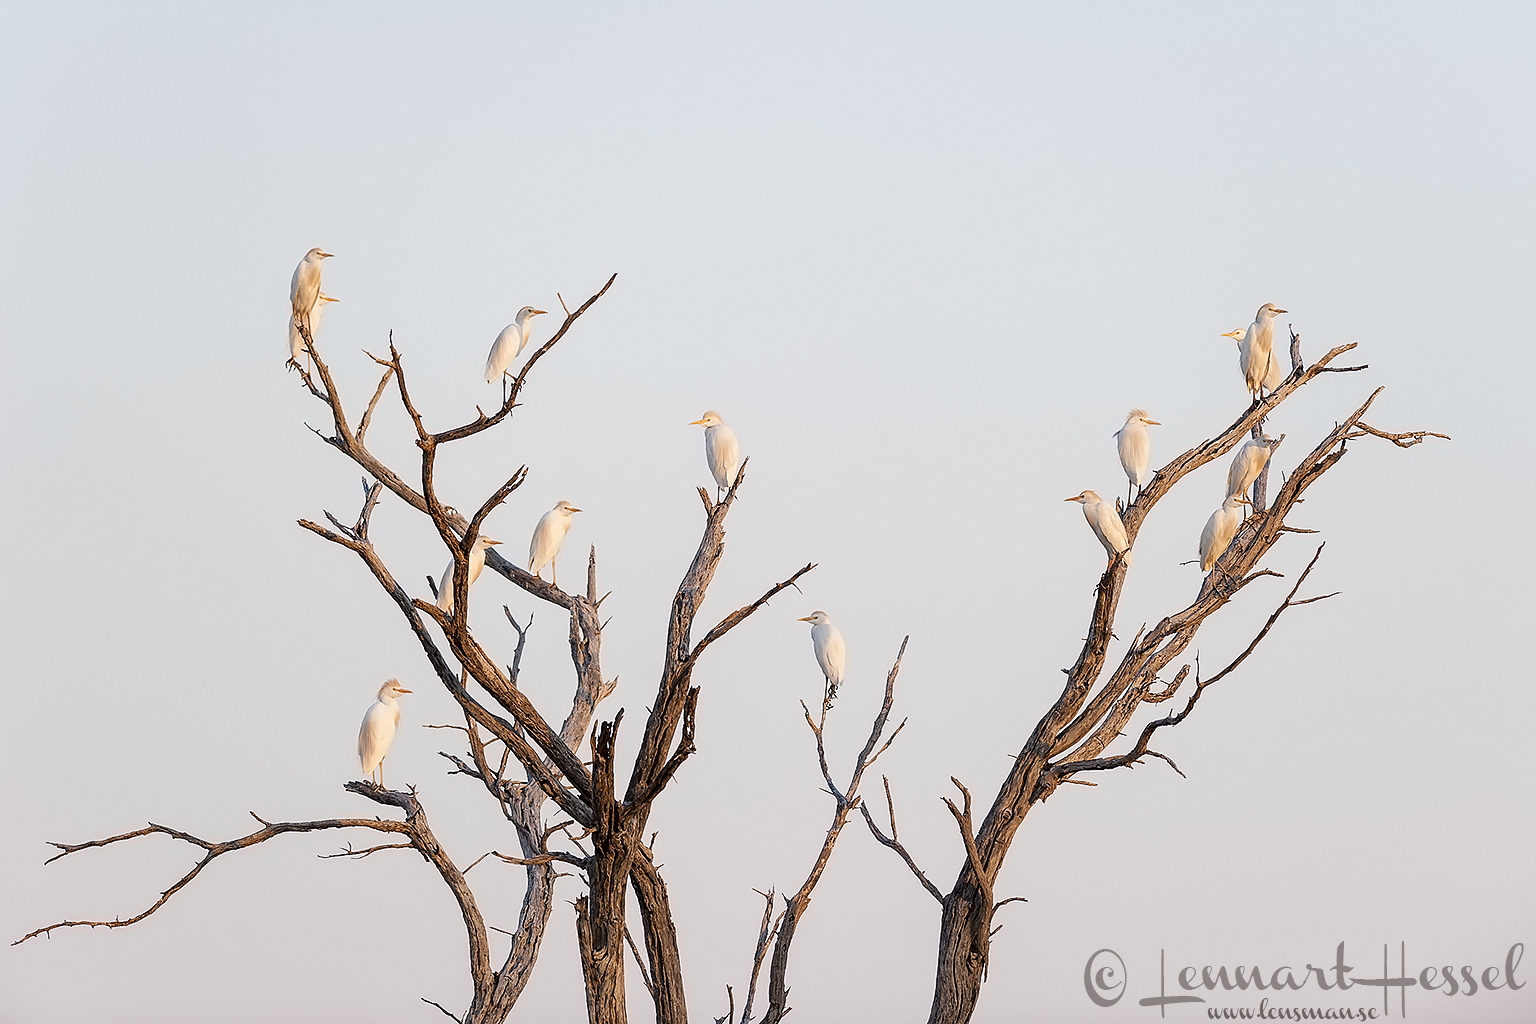 Cattle Egrets in Khwai Community Area, Botswana